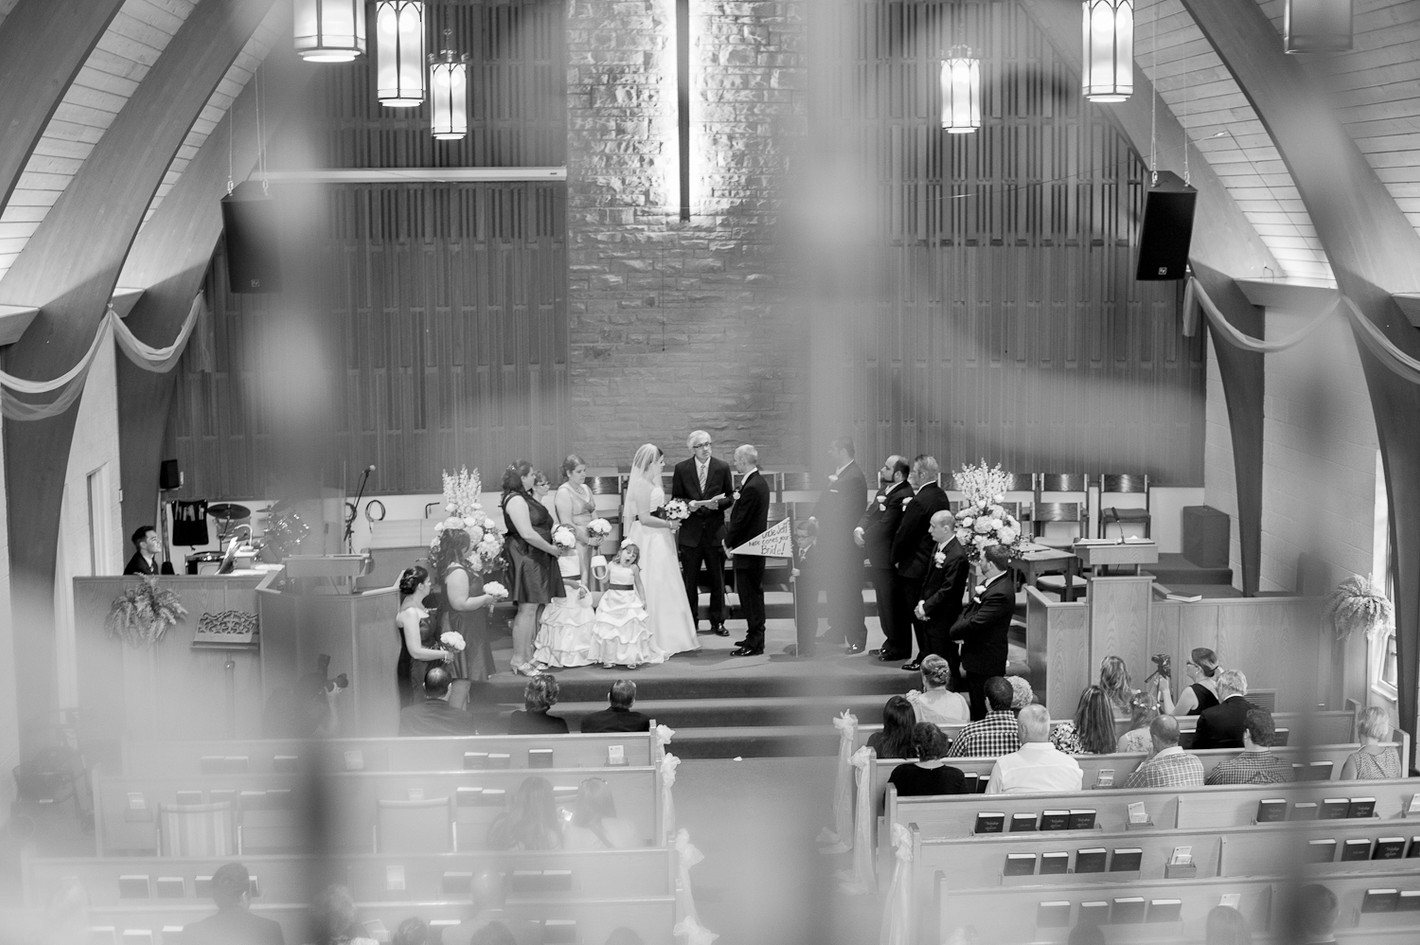 traditional wedding ceremony in a church